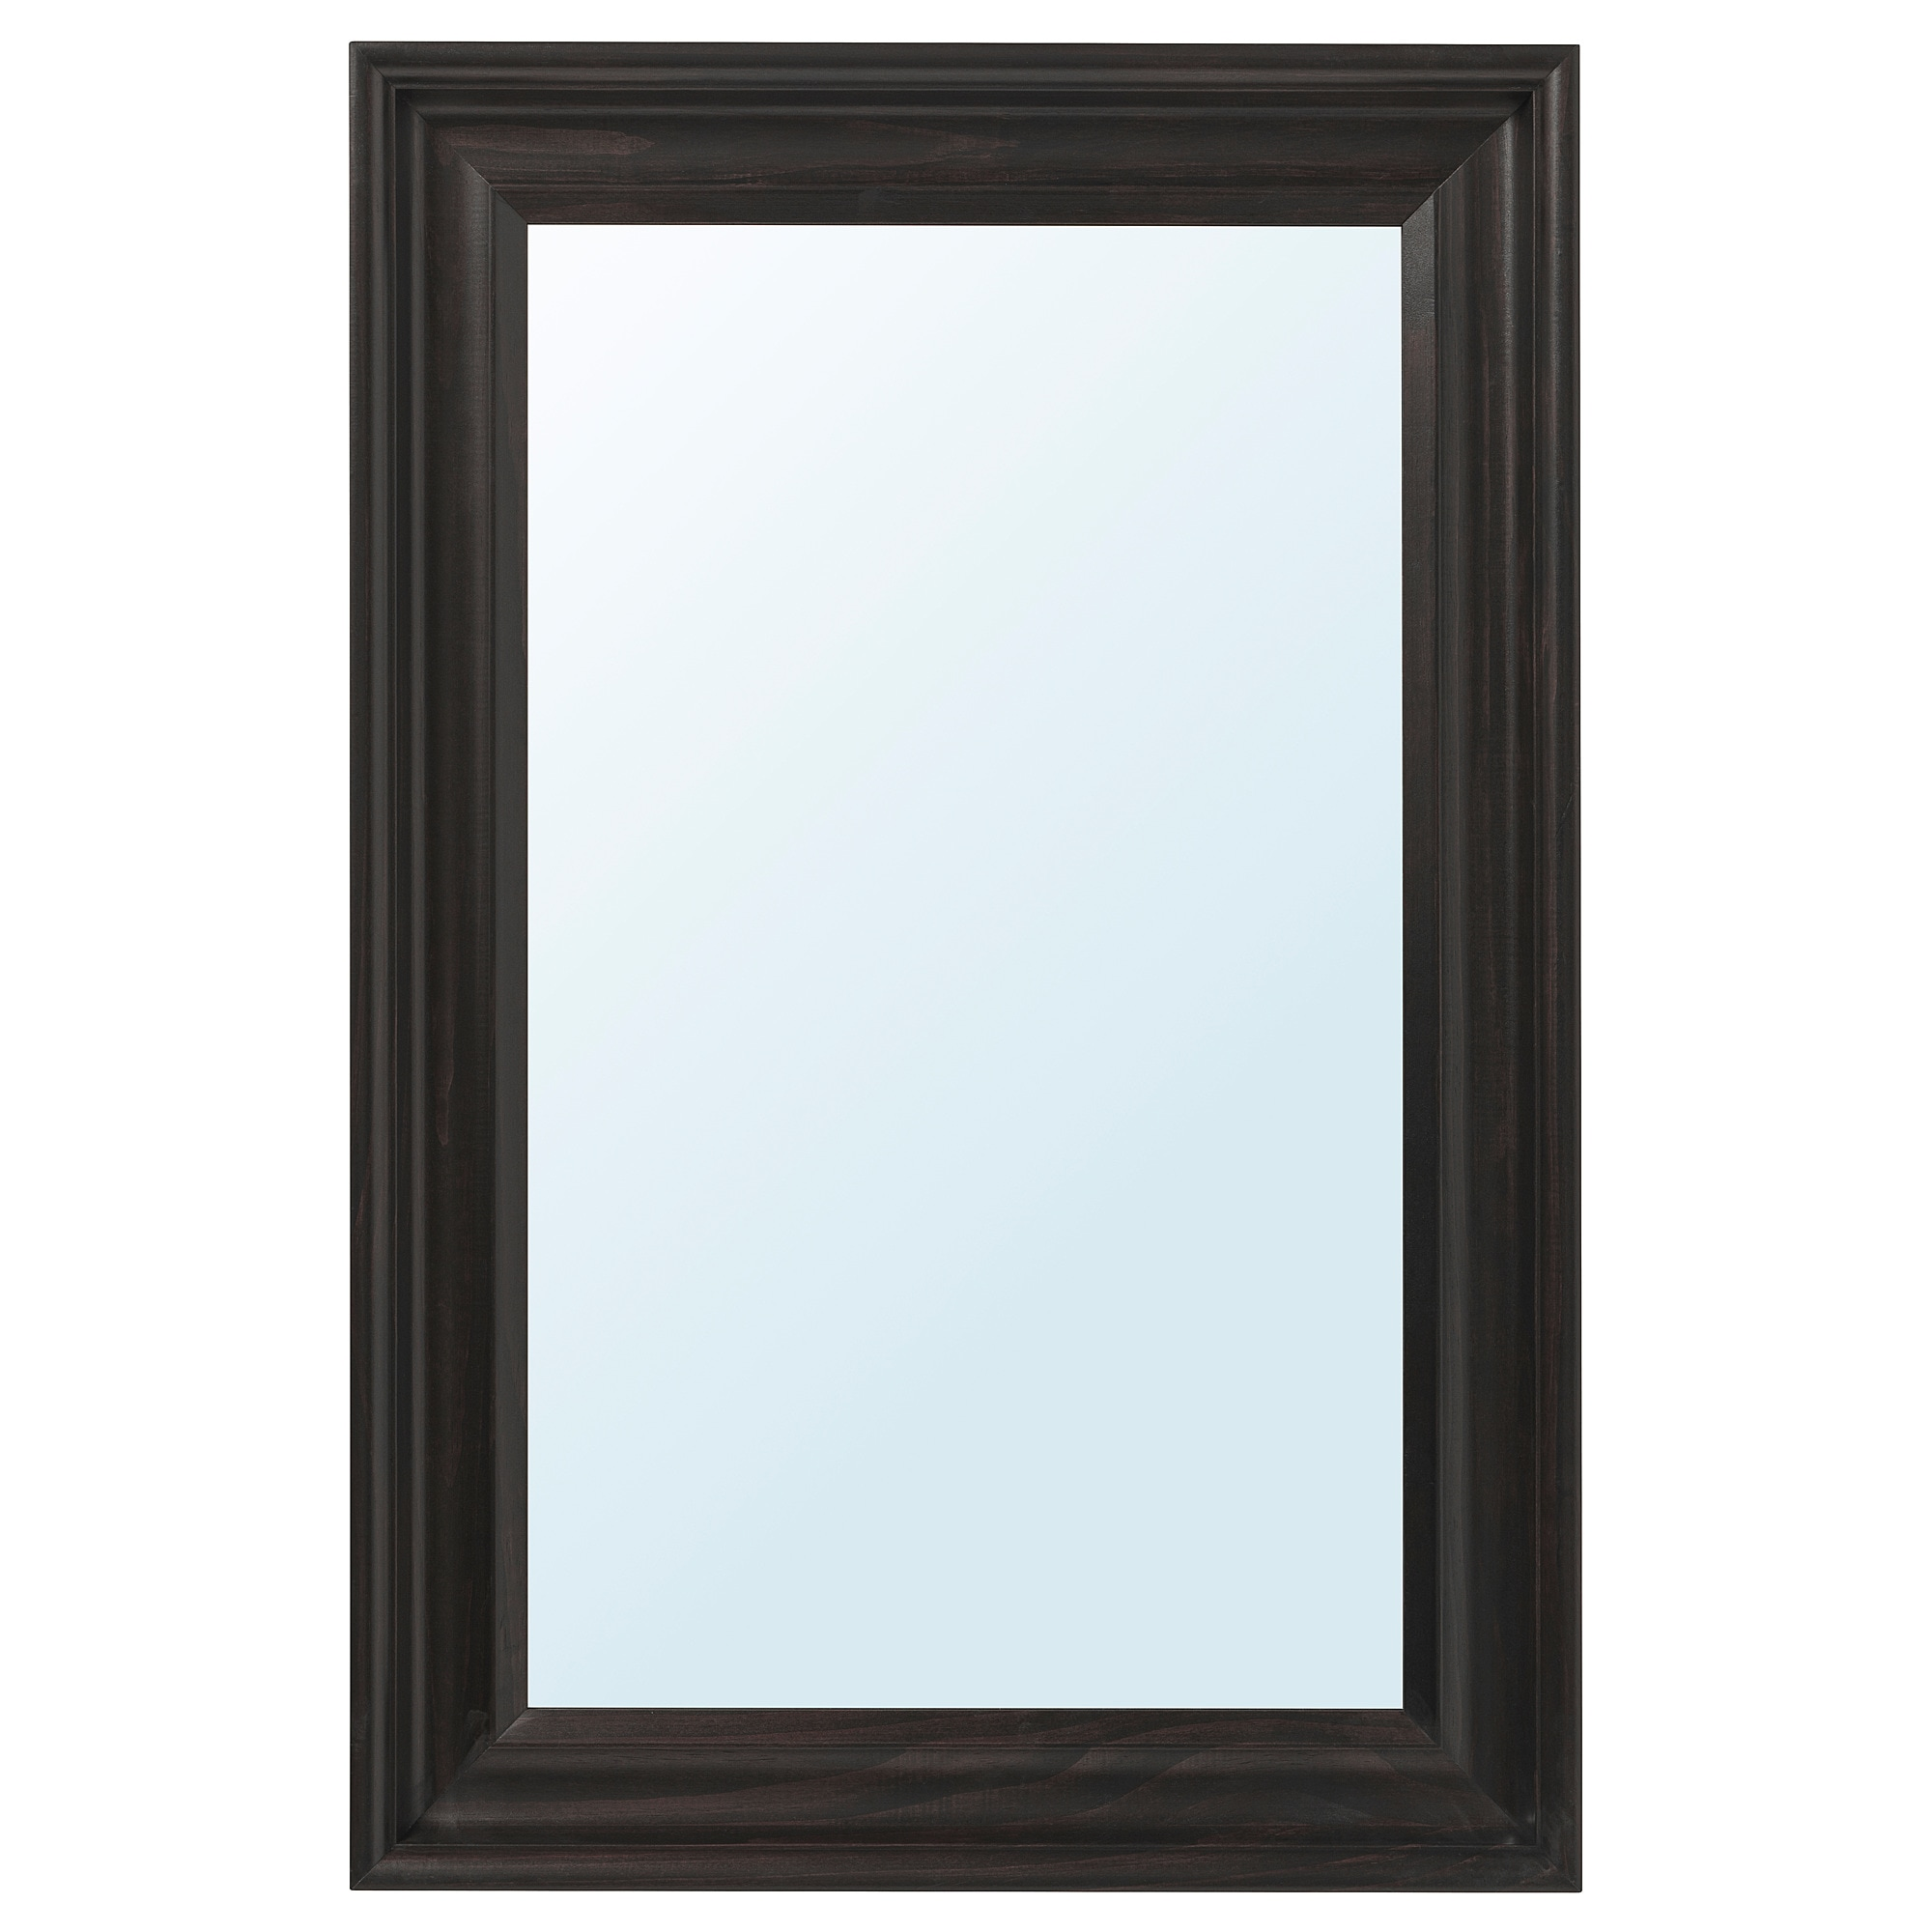 Superbe Mirror HEMNES Black Brown